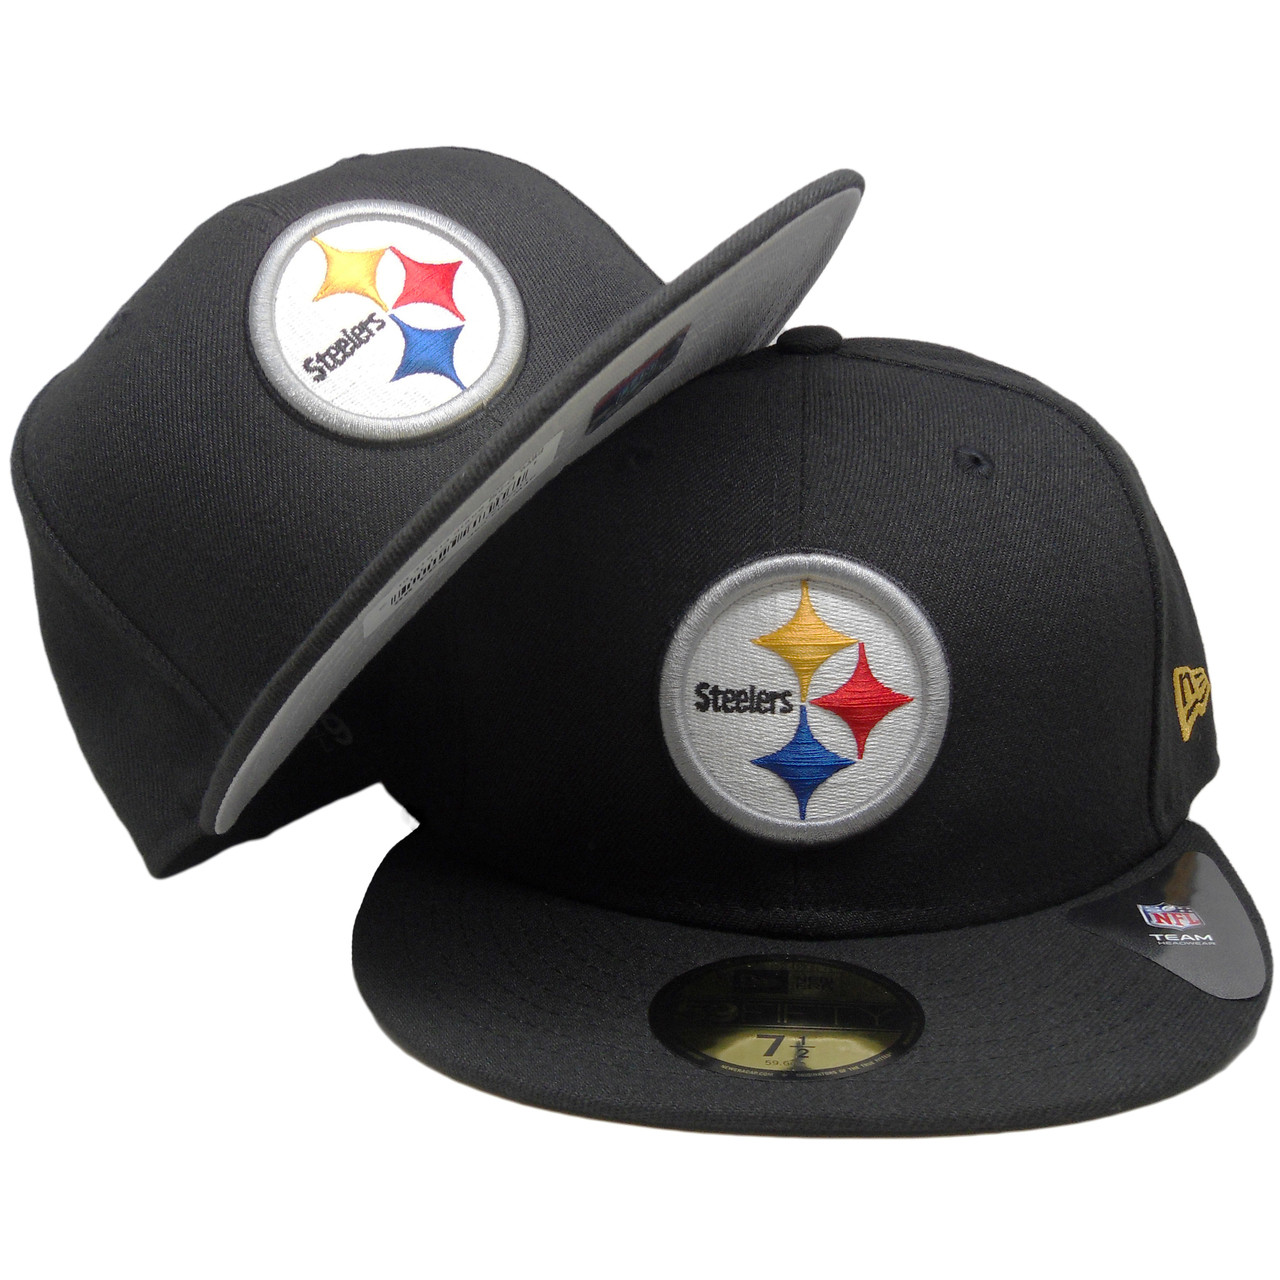 5df7b43be Pittsburgh Steelers New Era Classic Fitted Hat - Black, Yellow, Red, Blue -  ECapsUnlimited.com